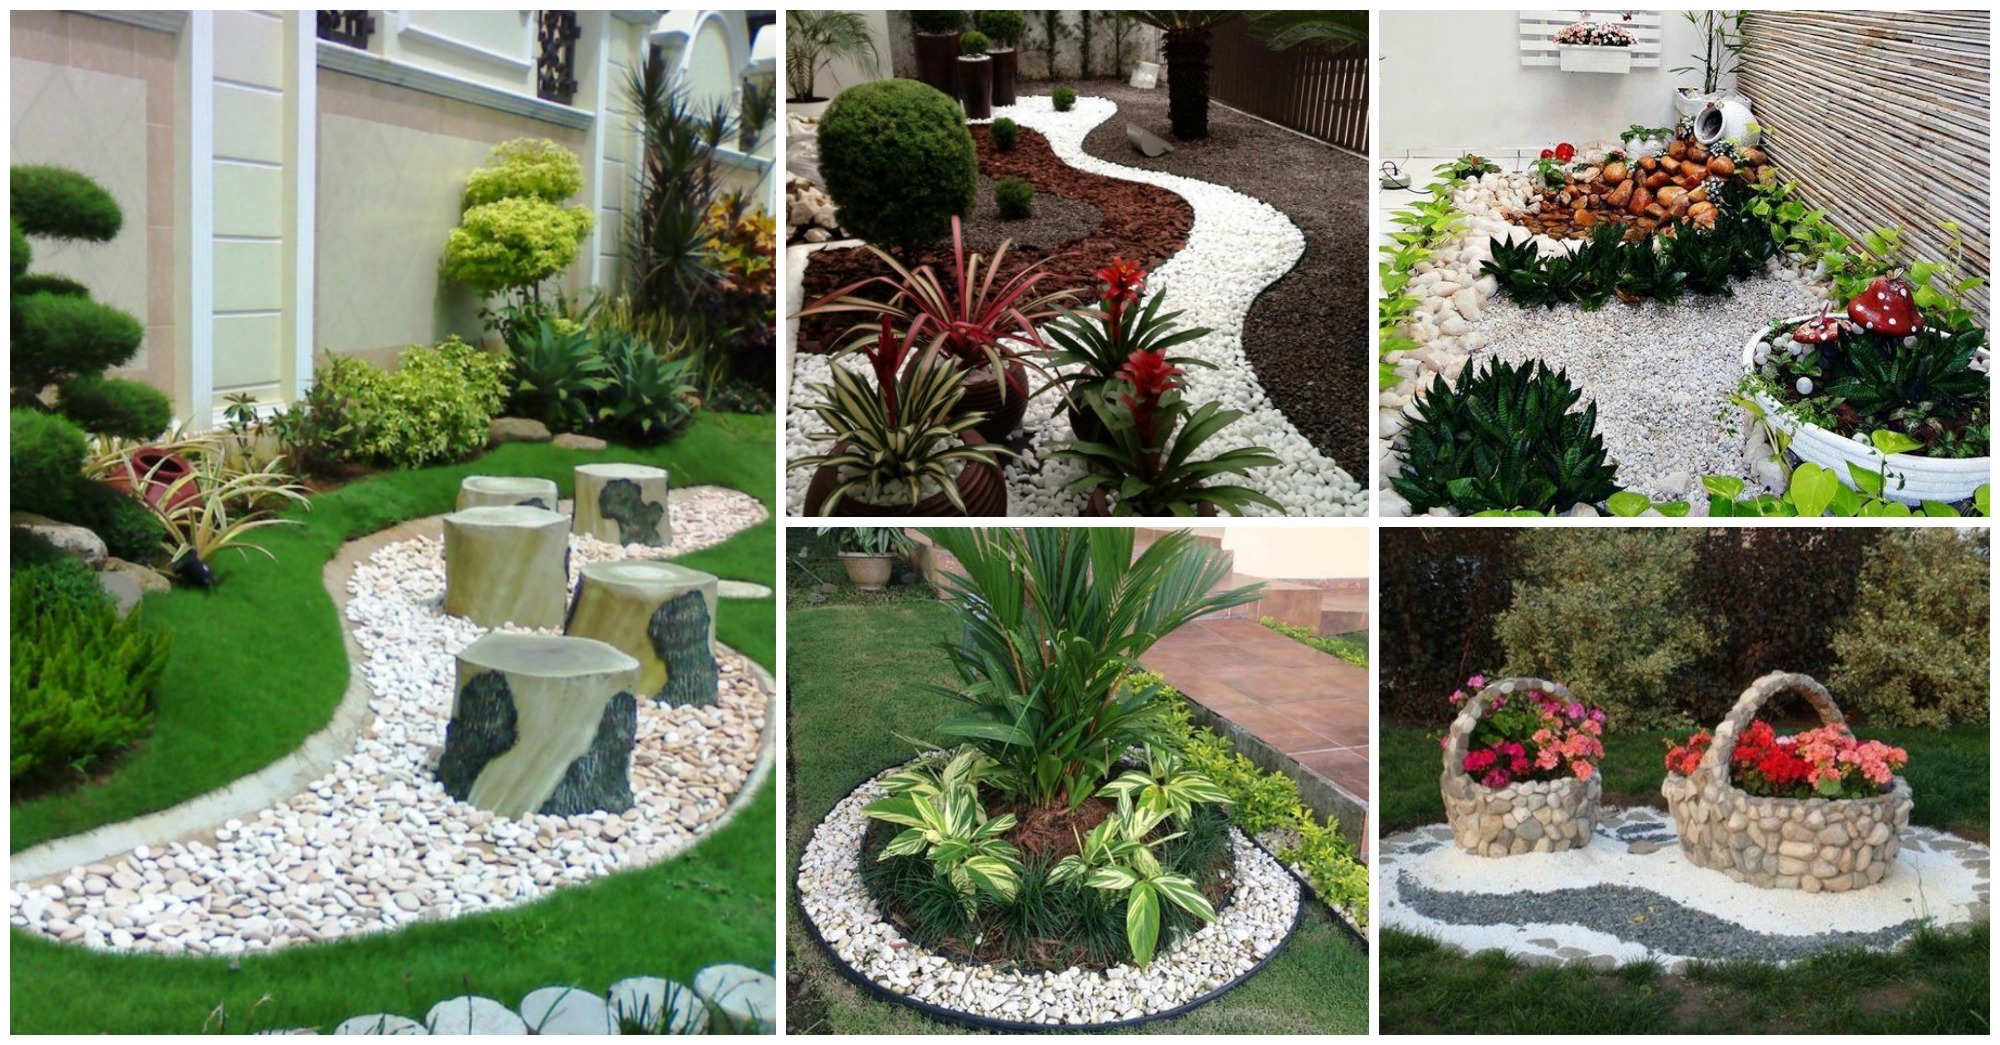 12 fant sticas ideas para dise ar un jard n con piedras for Ideas para decoracion de jardines